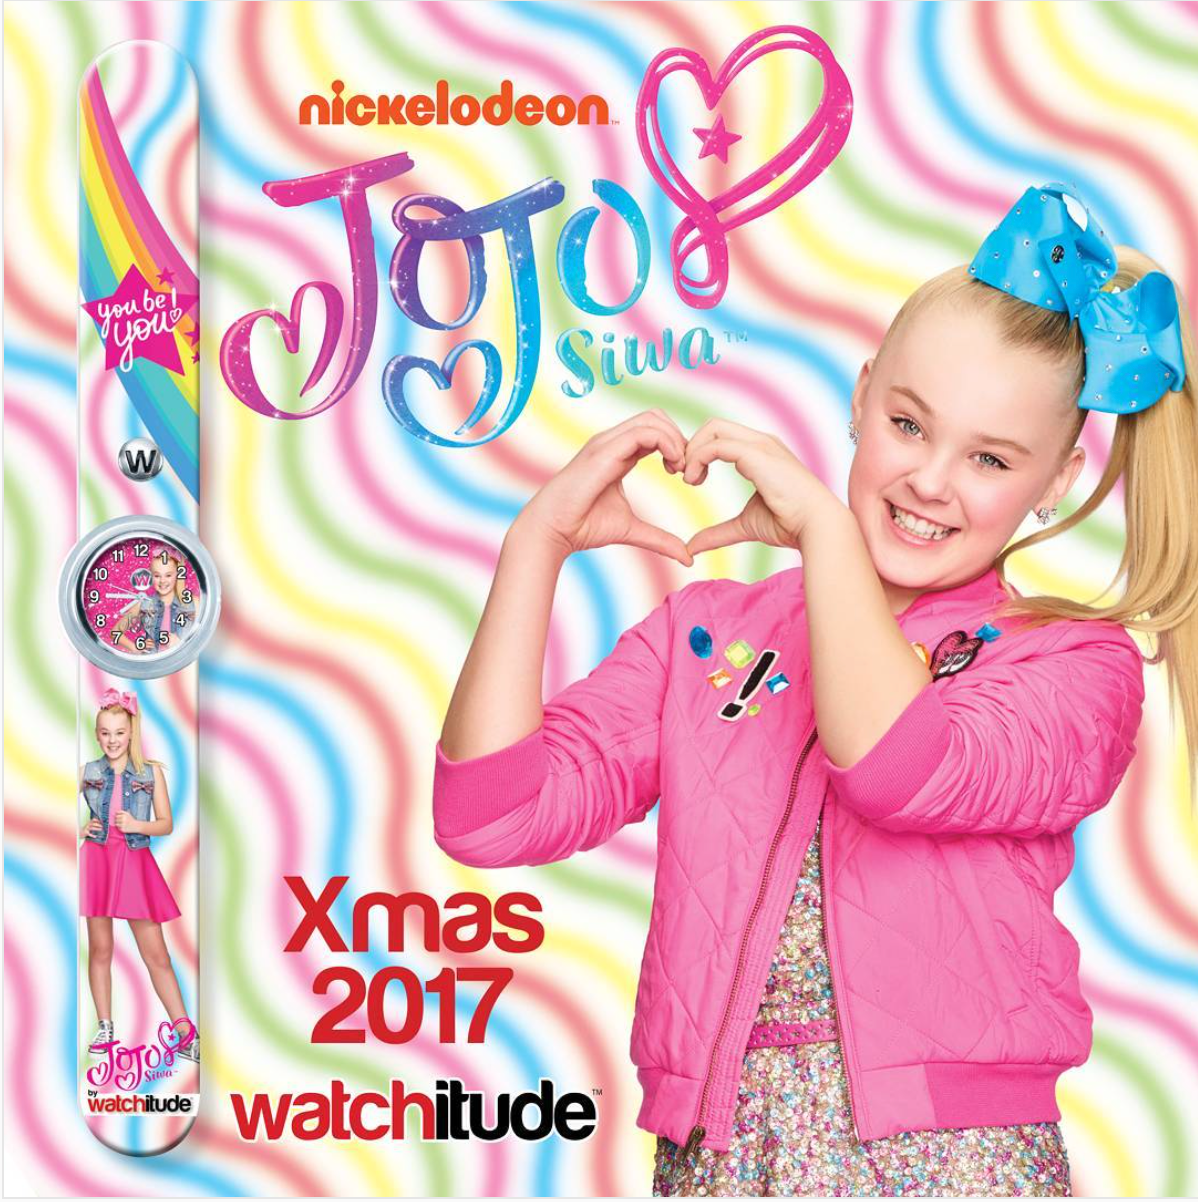 Make Superstar JoJo Siwa part of your holiday celebration and gift giving season!